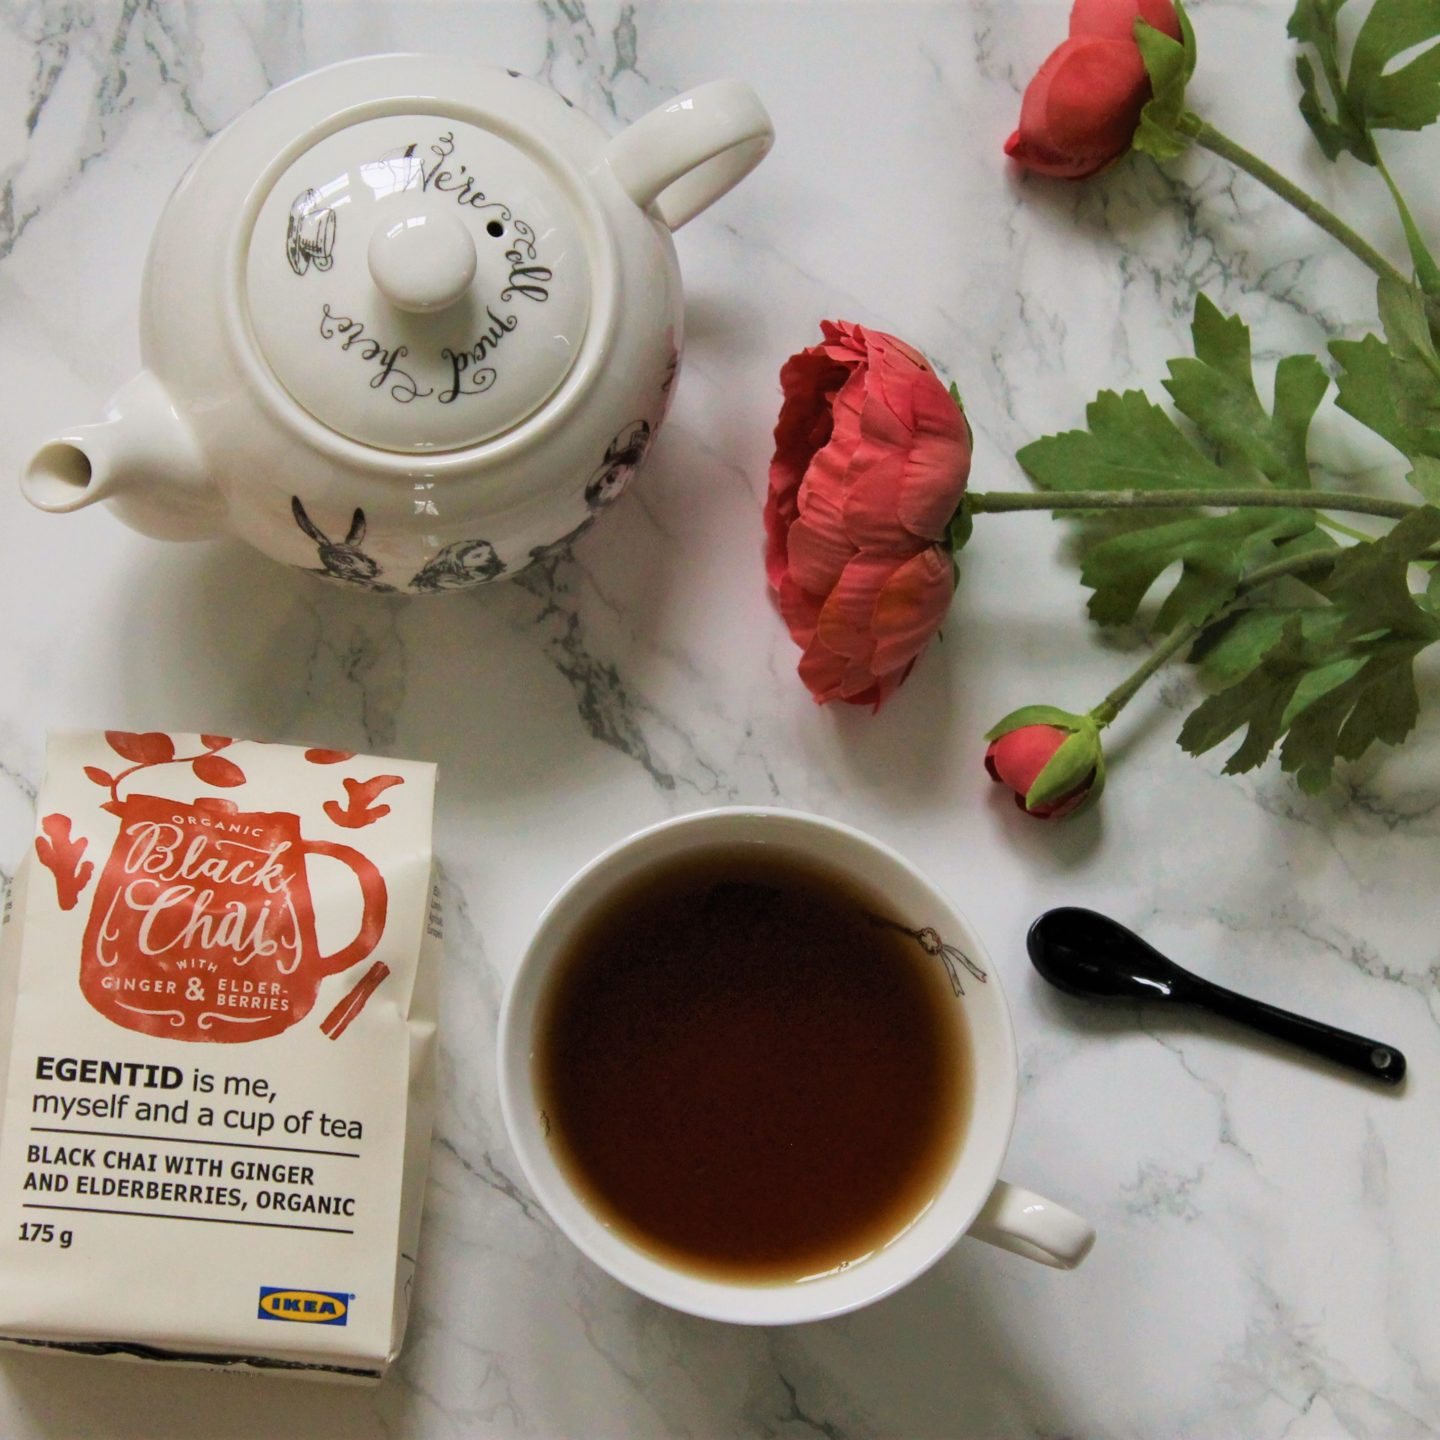 IKEA Black Chai with Ginger and Elderberries Tea Review